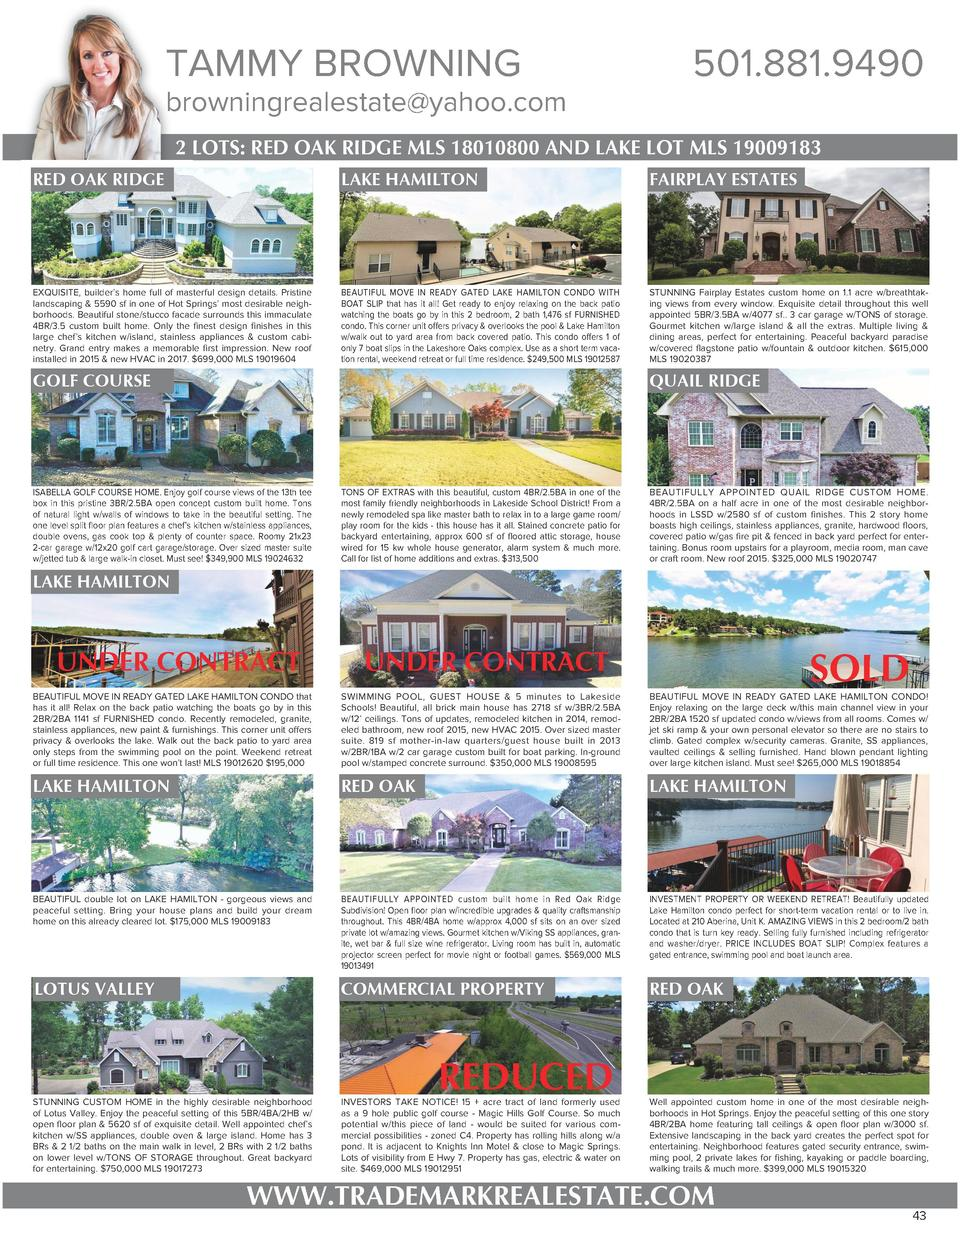 TAMMY BROWNING  browningrealestate yahoo.com  501.881.9490  2 LOTS  RED OAK RIDGE MLS 18010800 AND LAKE LOT MLS 19009183 R...